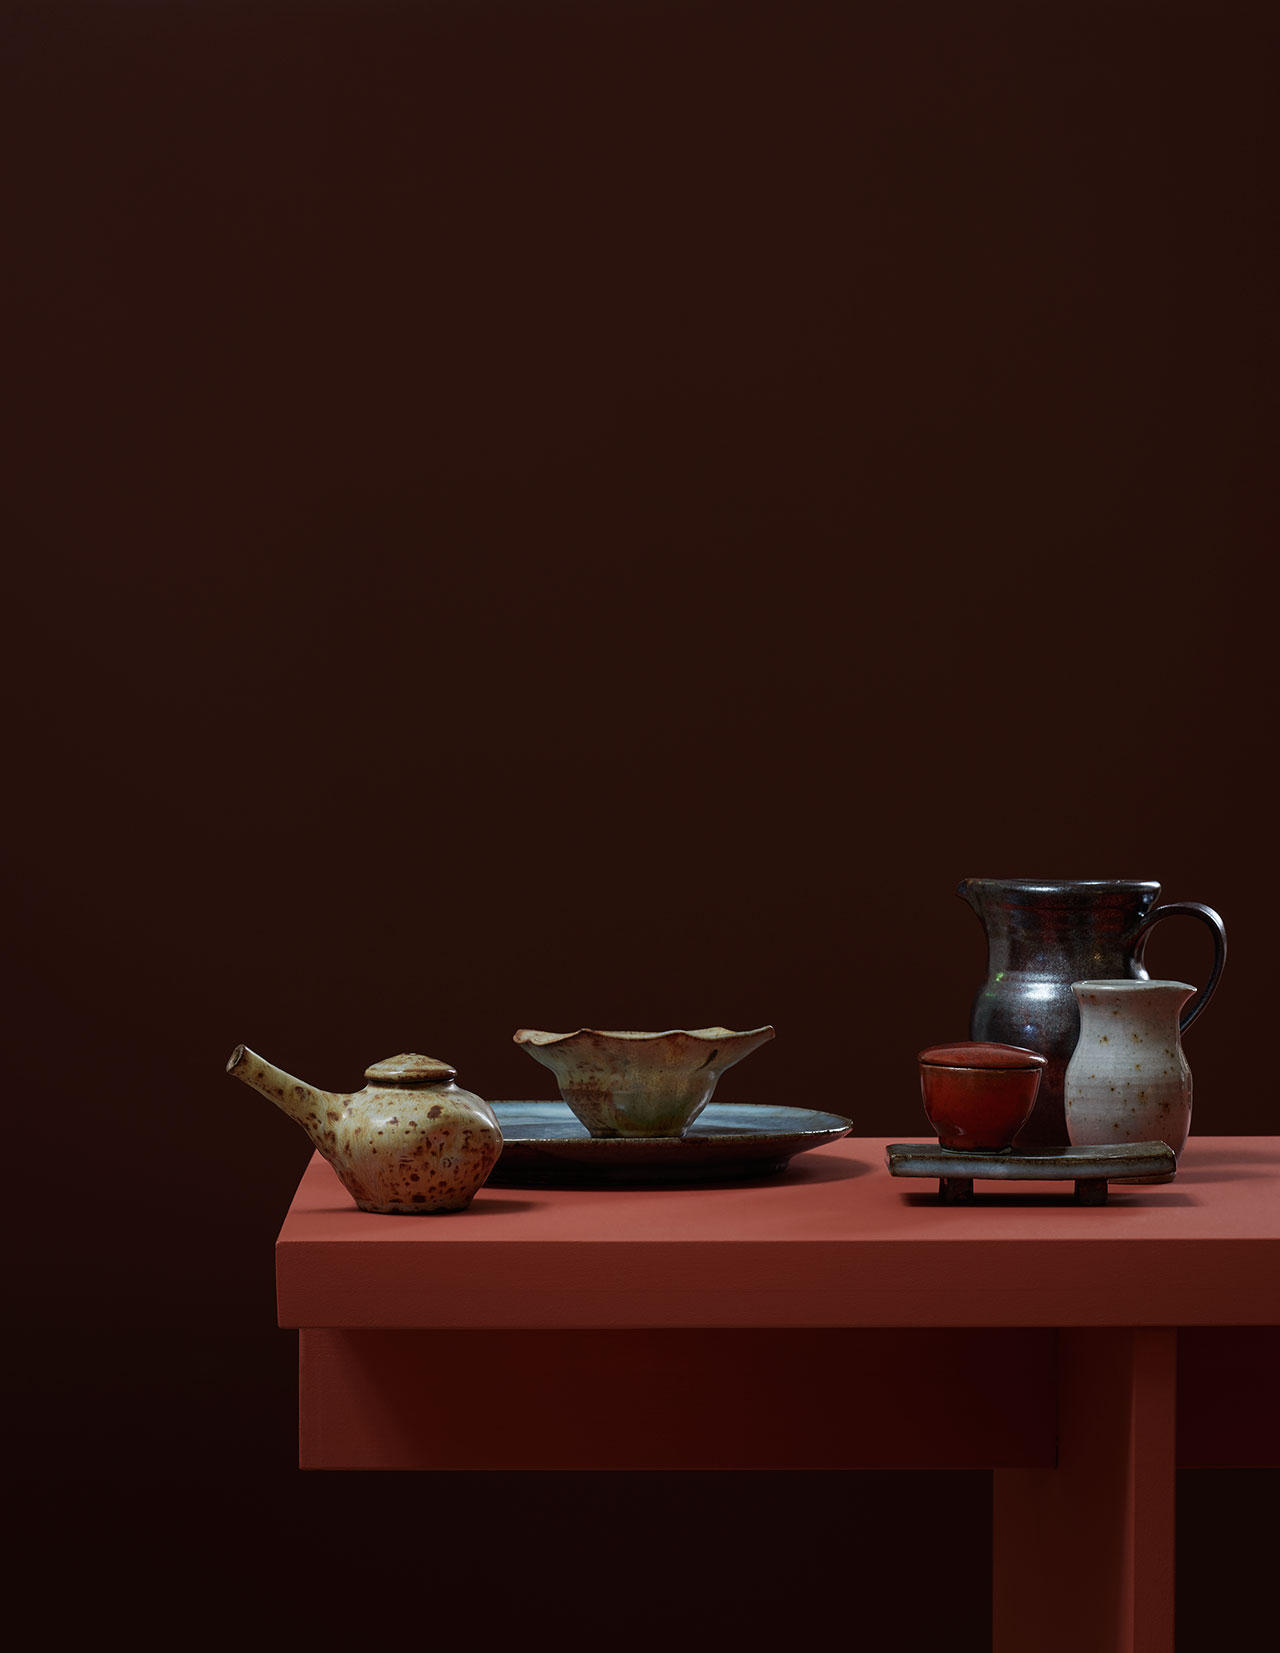 Earthenware on the table by Calle Forsberg. Photo by Kristofer Johnsson.